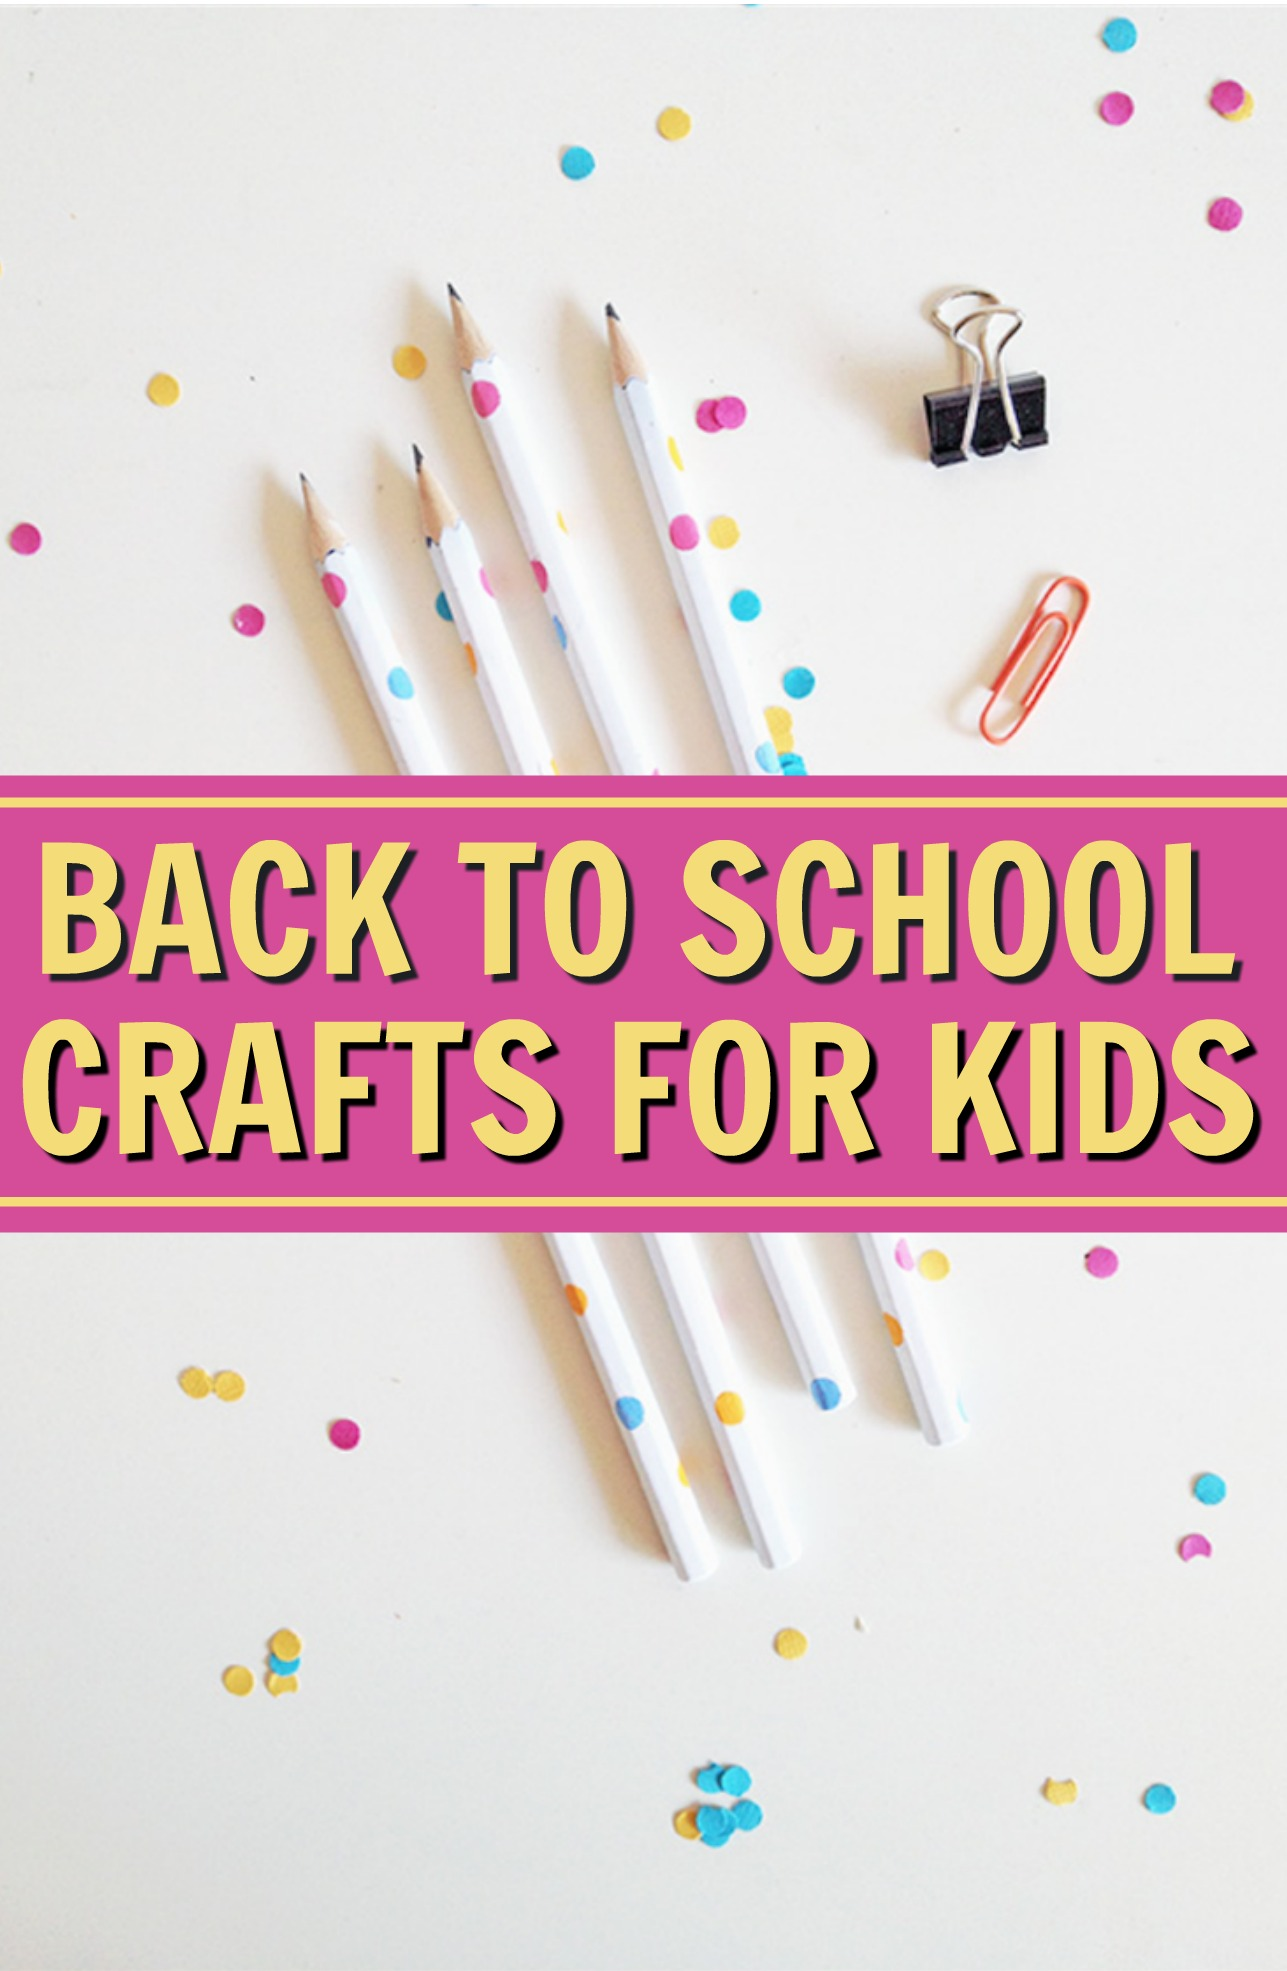 back to school, back to school kids crafts, back to school craft ideas for kids, back to school DIY, back to school projects